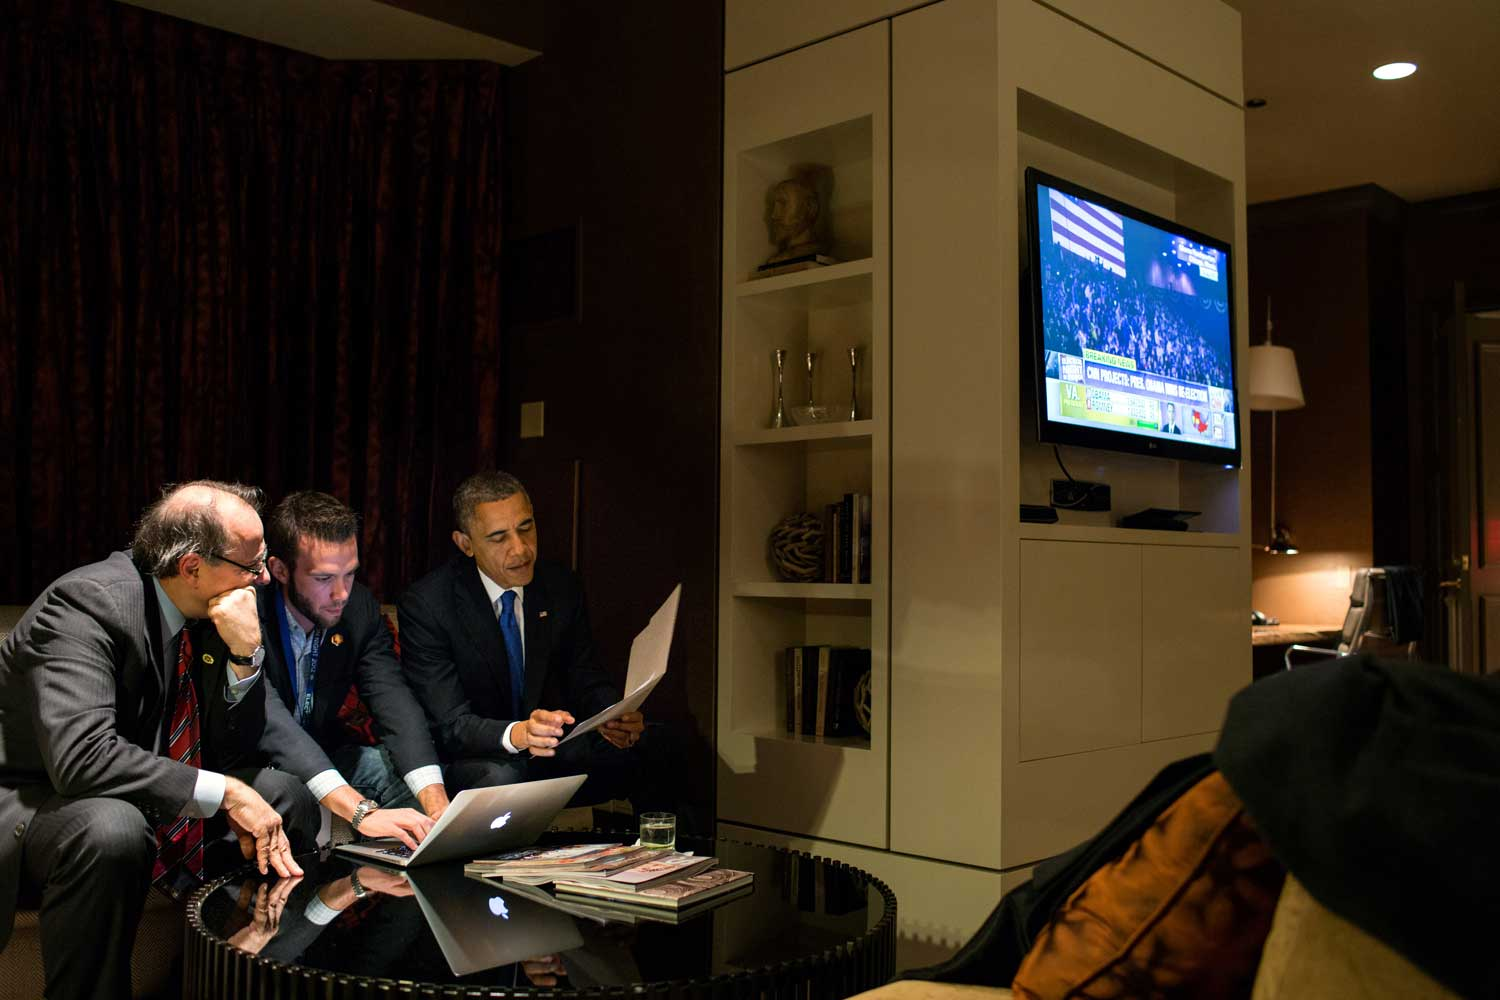 President Barack Obama reviews his election speech with Jon Favreau, Director of Speechwriting, and David Axelrod in the Presidential Suite at the Fairmont Chicago Millennium Park in Chicago, Ill., Nov. 6, 2012.